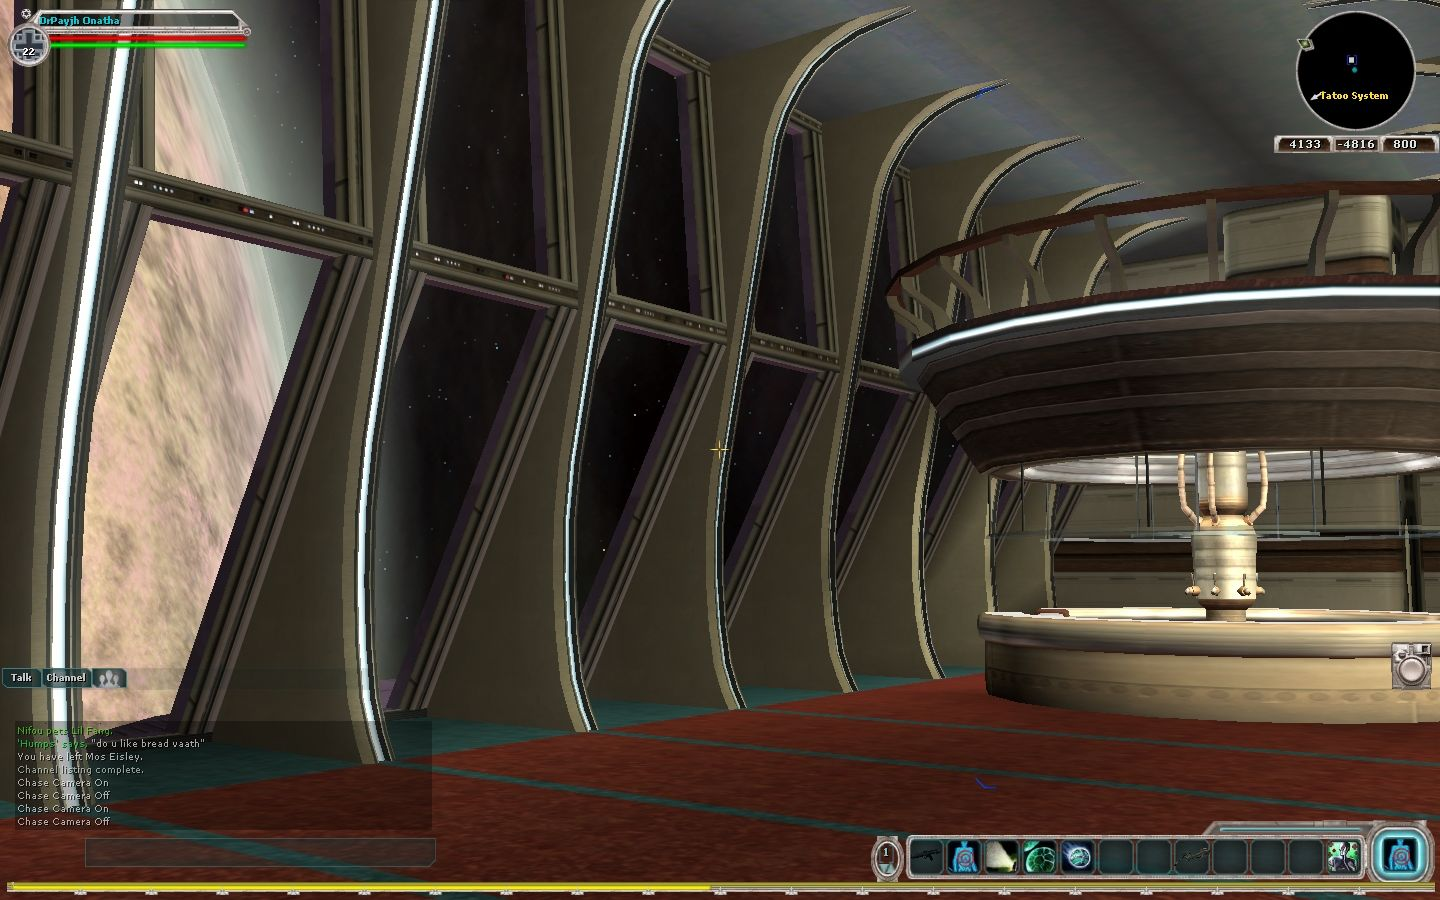 Star Wars: Galaxies - Jump to Lightspeed Windows Yacht interior. Tatooine rolls by outside.